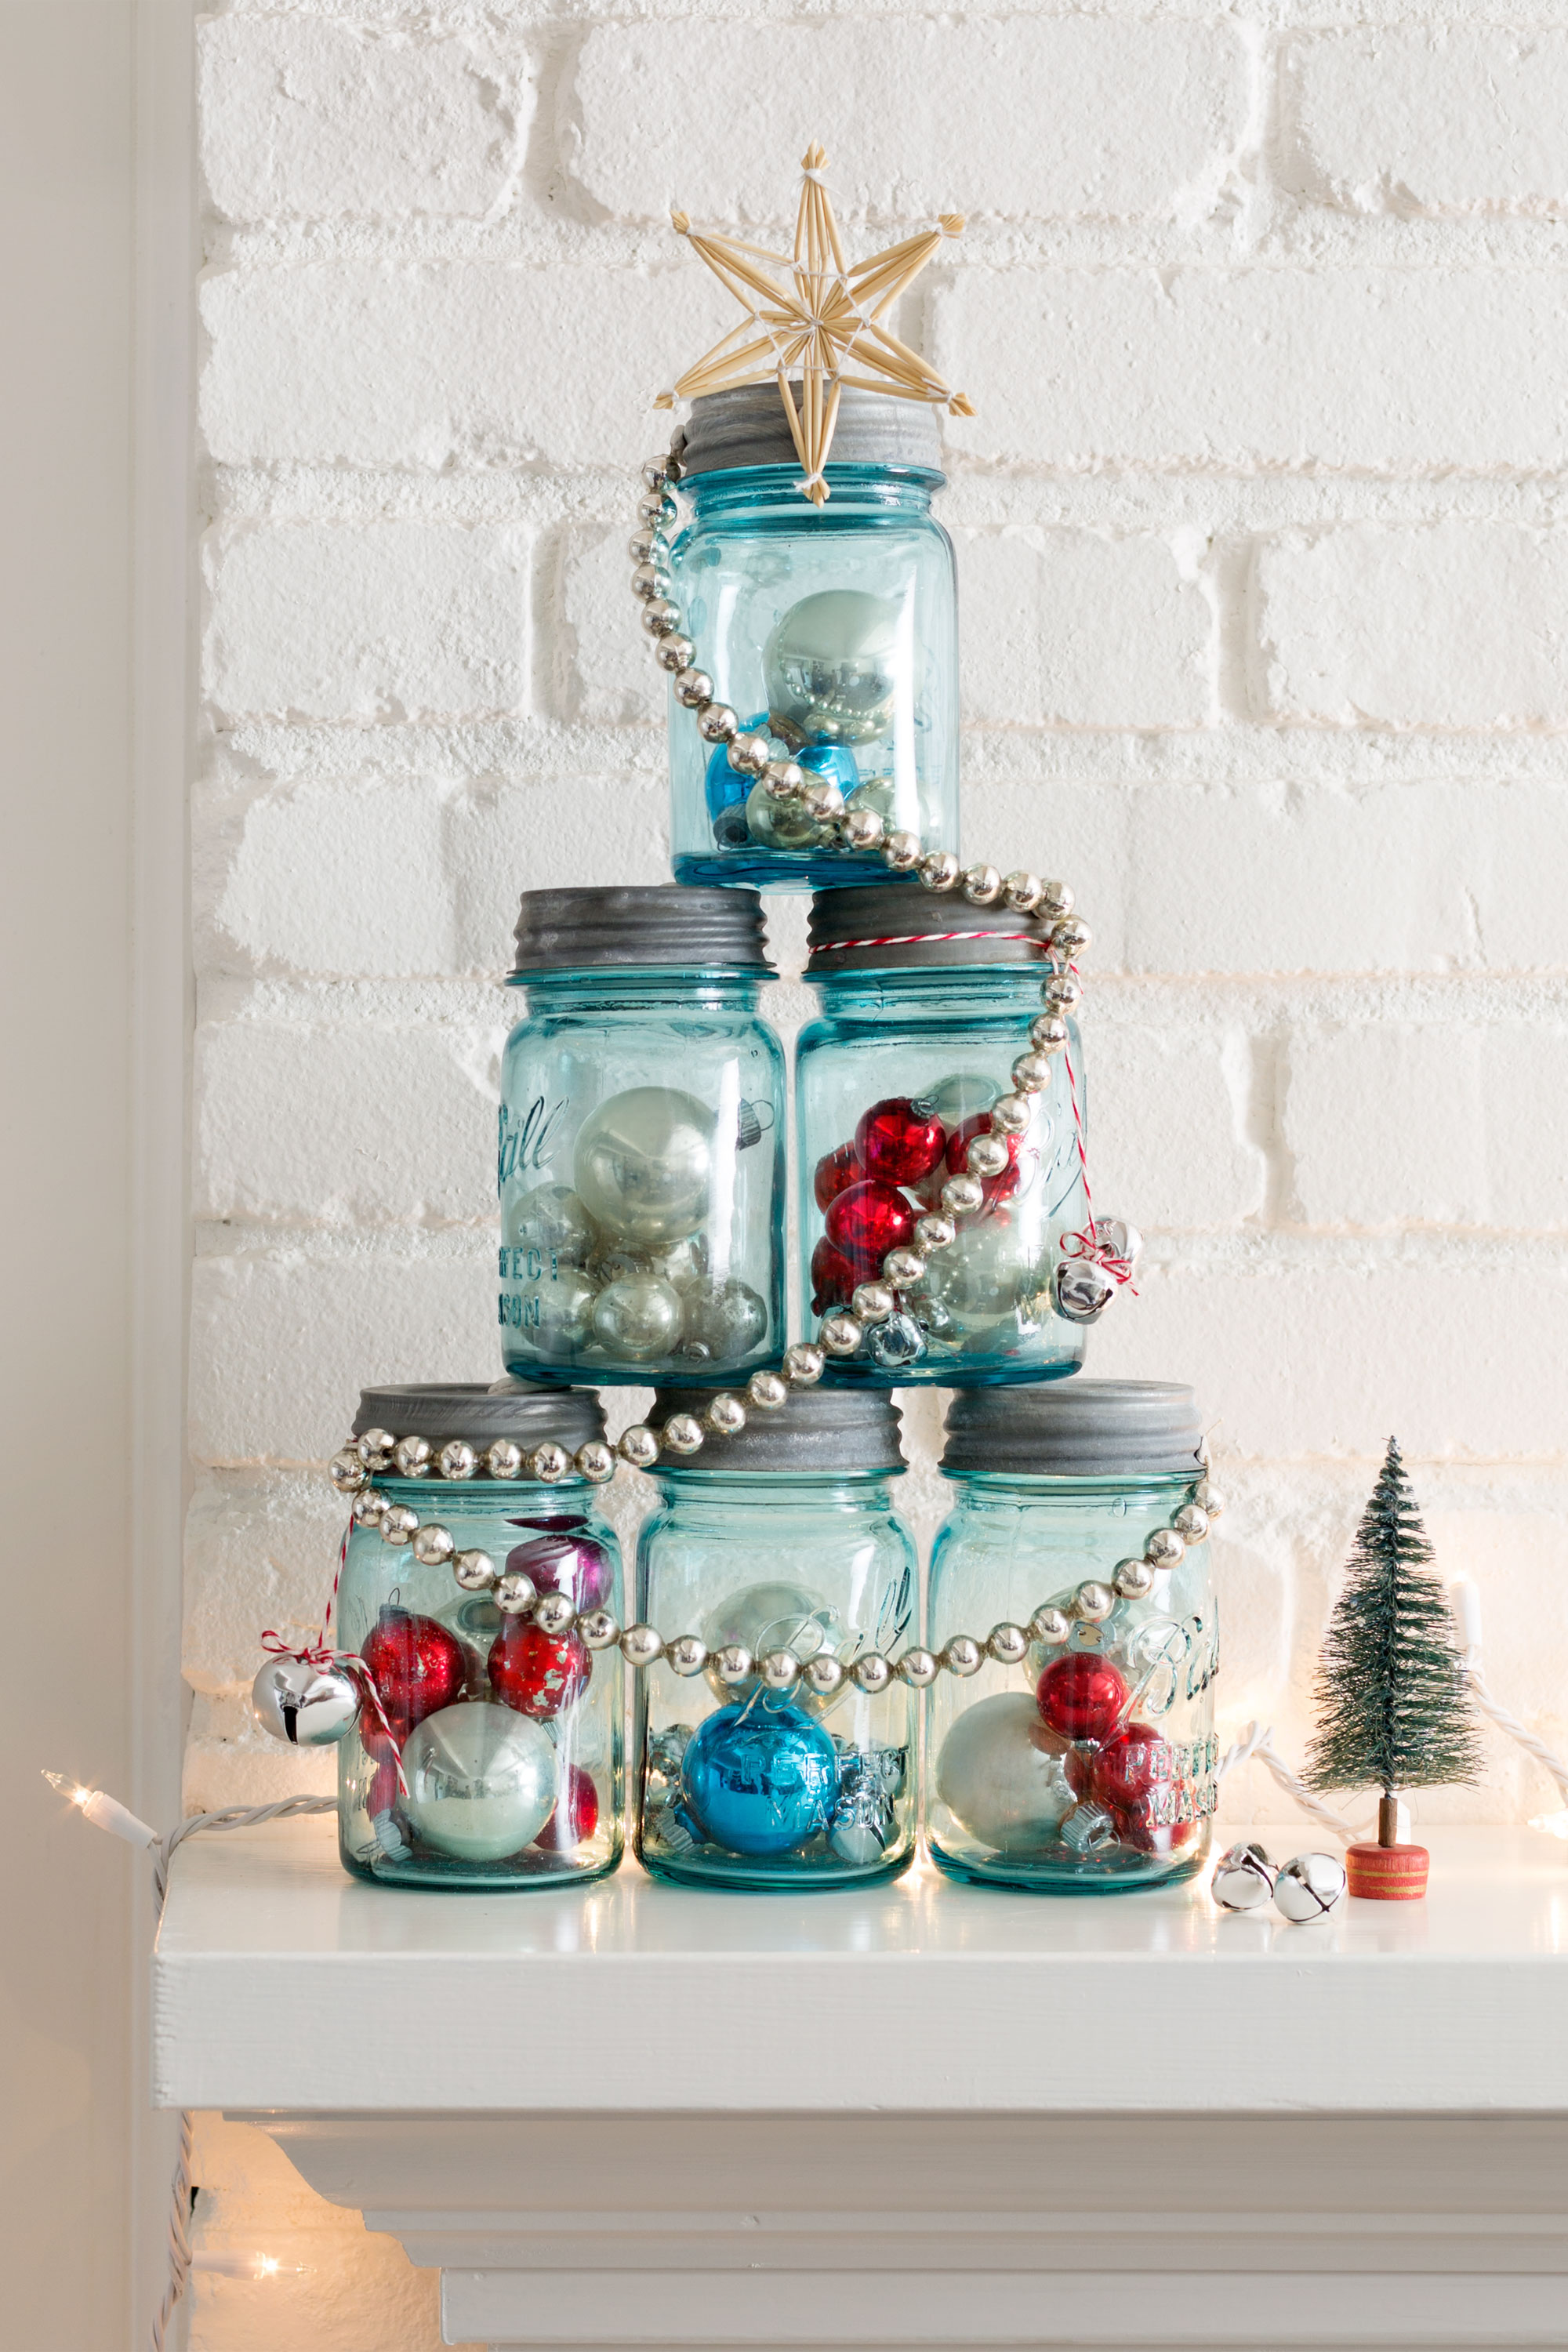 37 diy homemade christmas decorations christmas decor for Christmas decorations easy to make at home